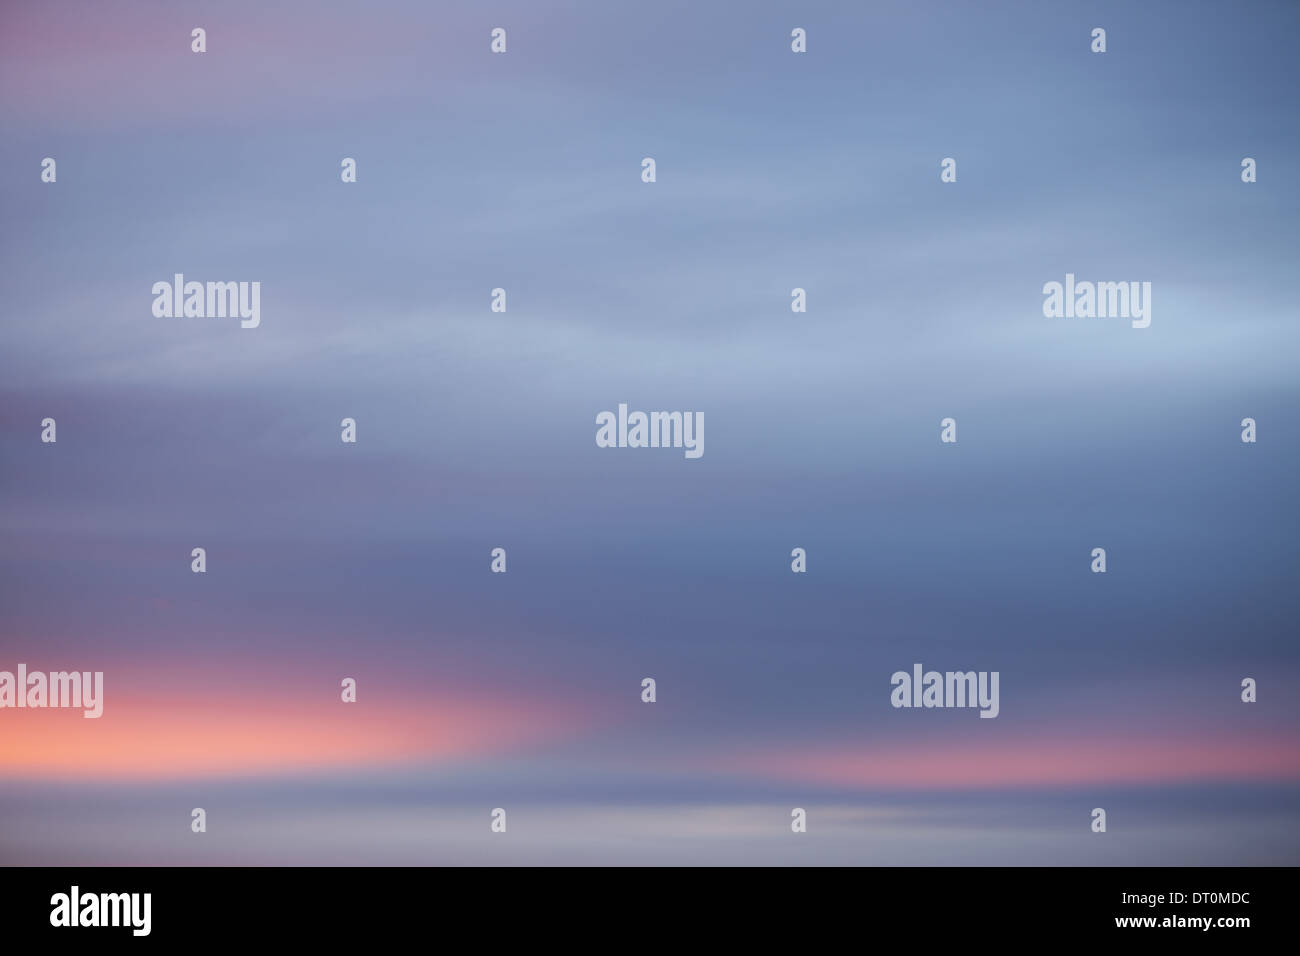 Seattle Washington USA Clouds in the sky at dusk - Stock Image